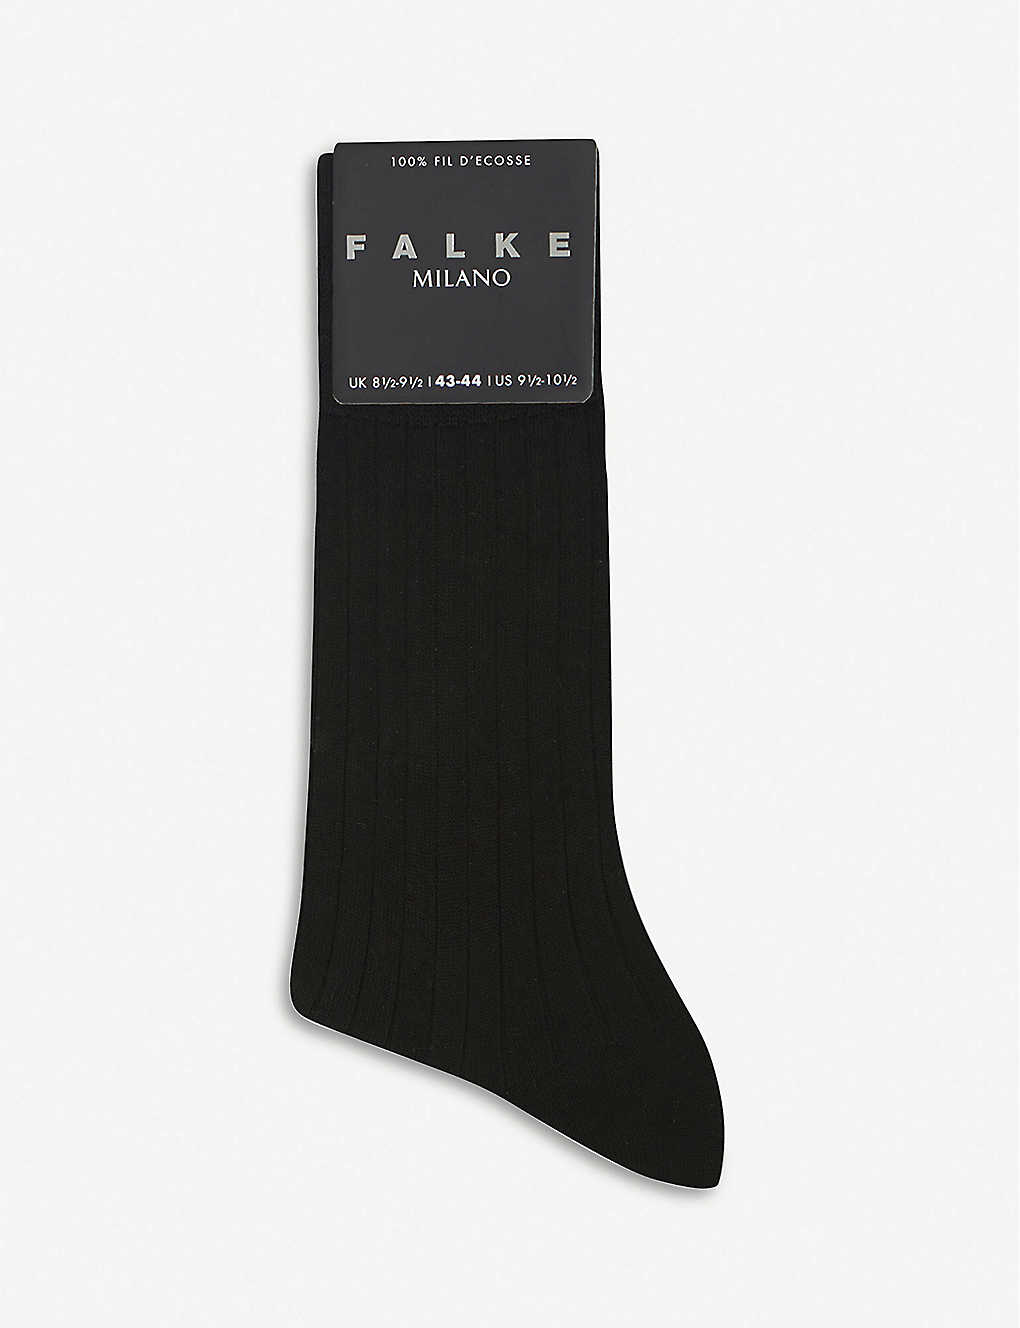 FALKE: Milano cotton-blend socks